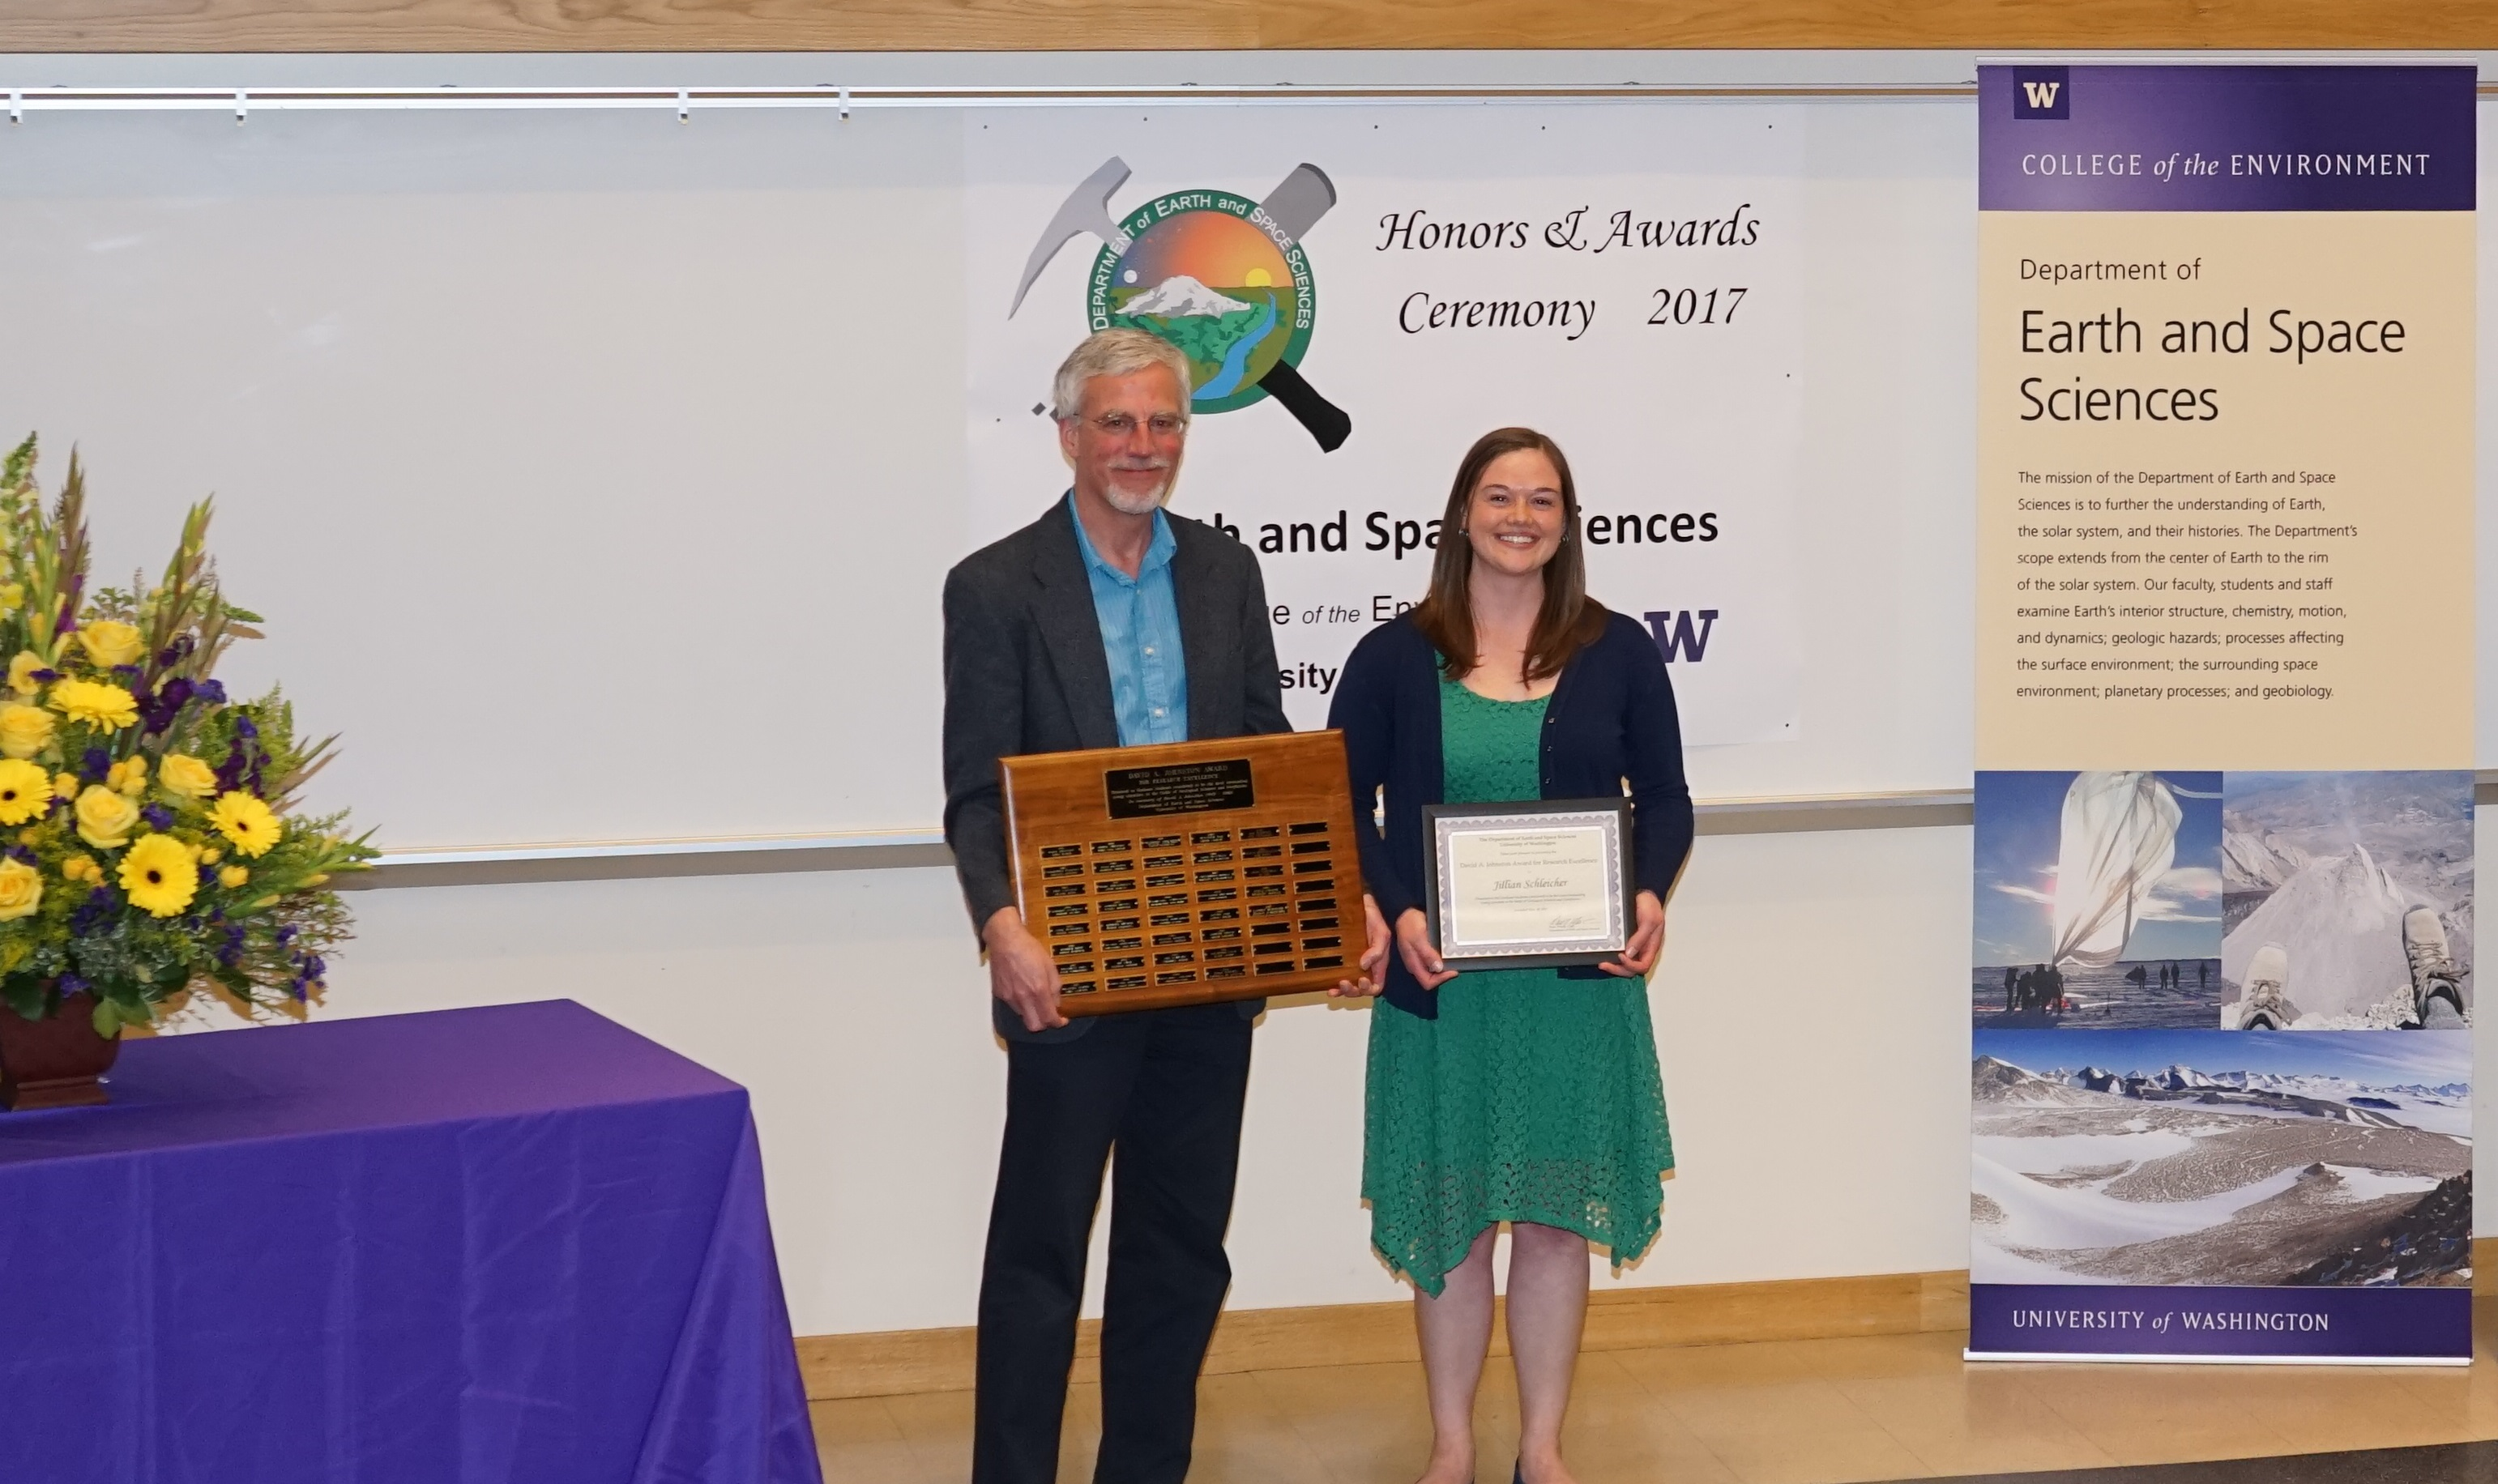 Photo of Jillian Schleicher receiving the Johnston Prize for Research Excellence from Ken Creager.